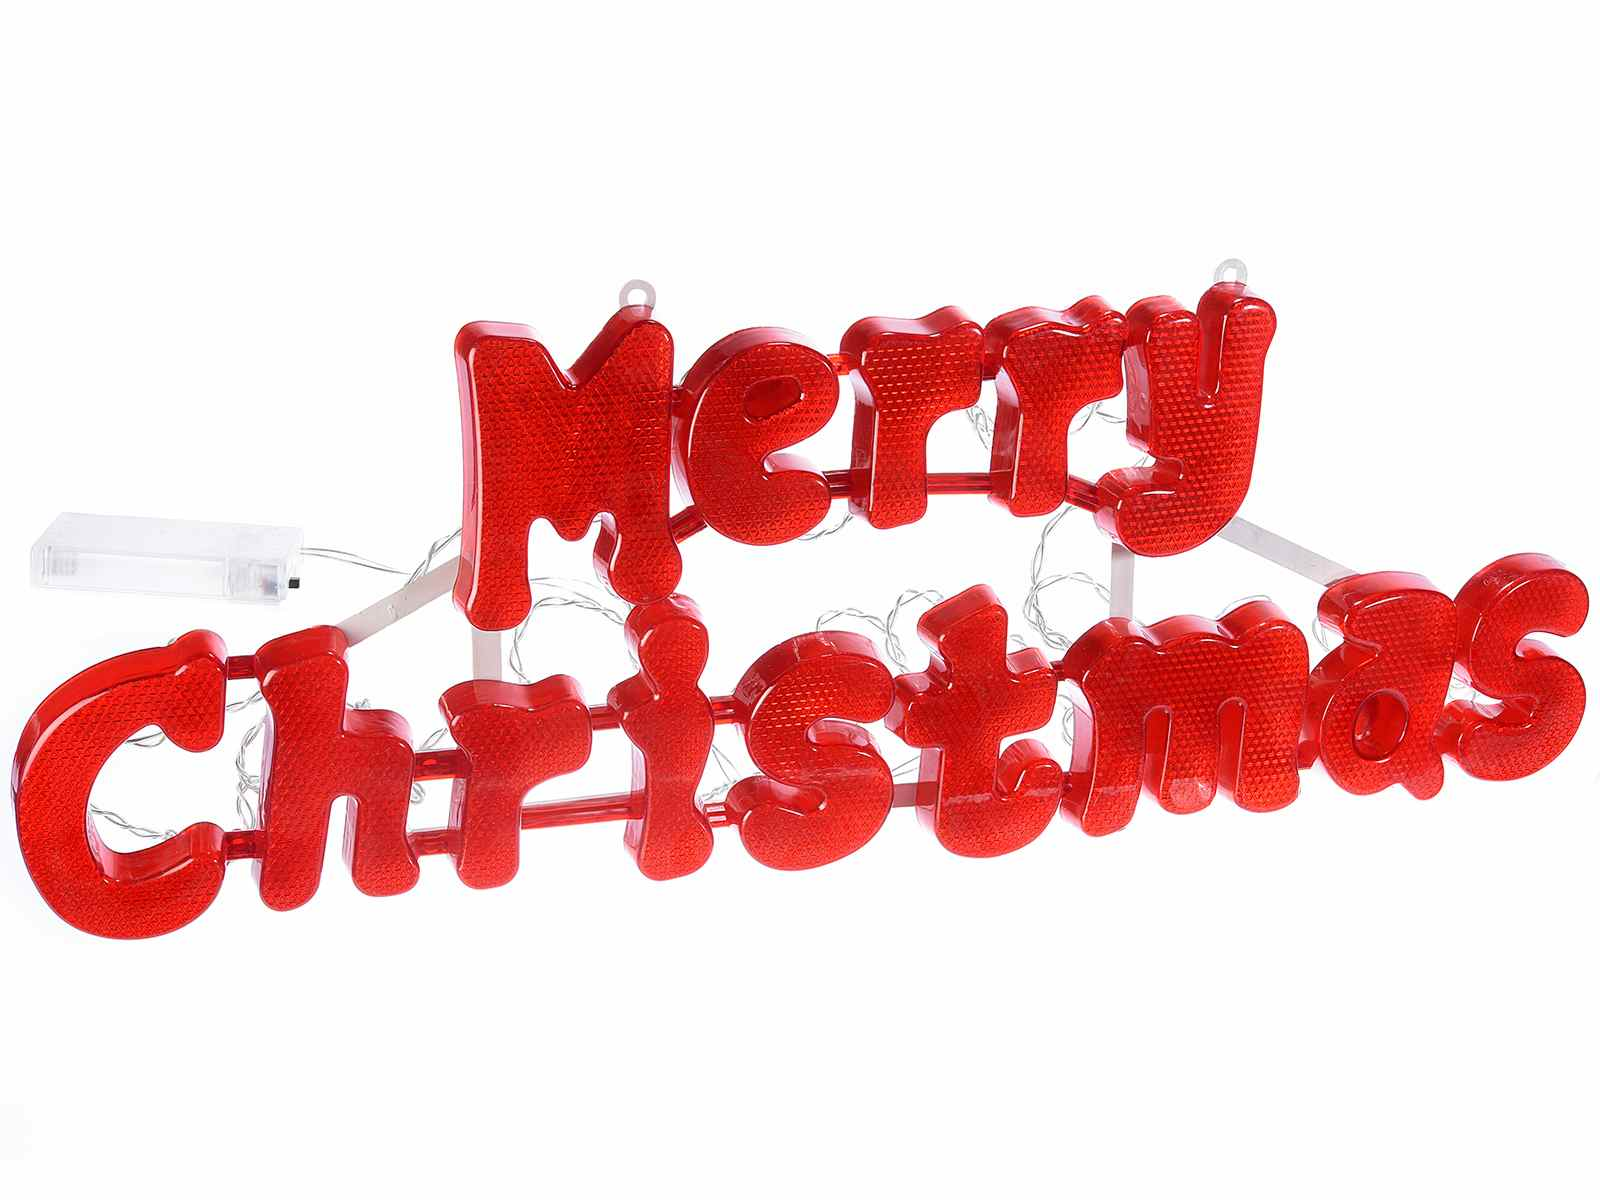 Merry Christmas Writing.Merry Christmas Writing With 50 Led Lights 54 36 38 Art